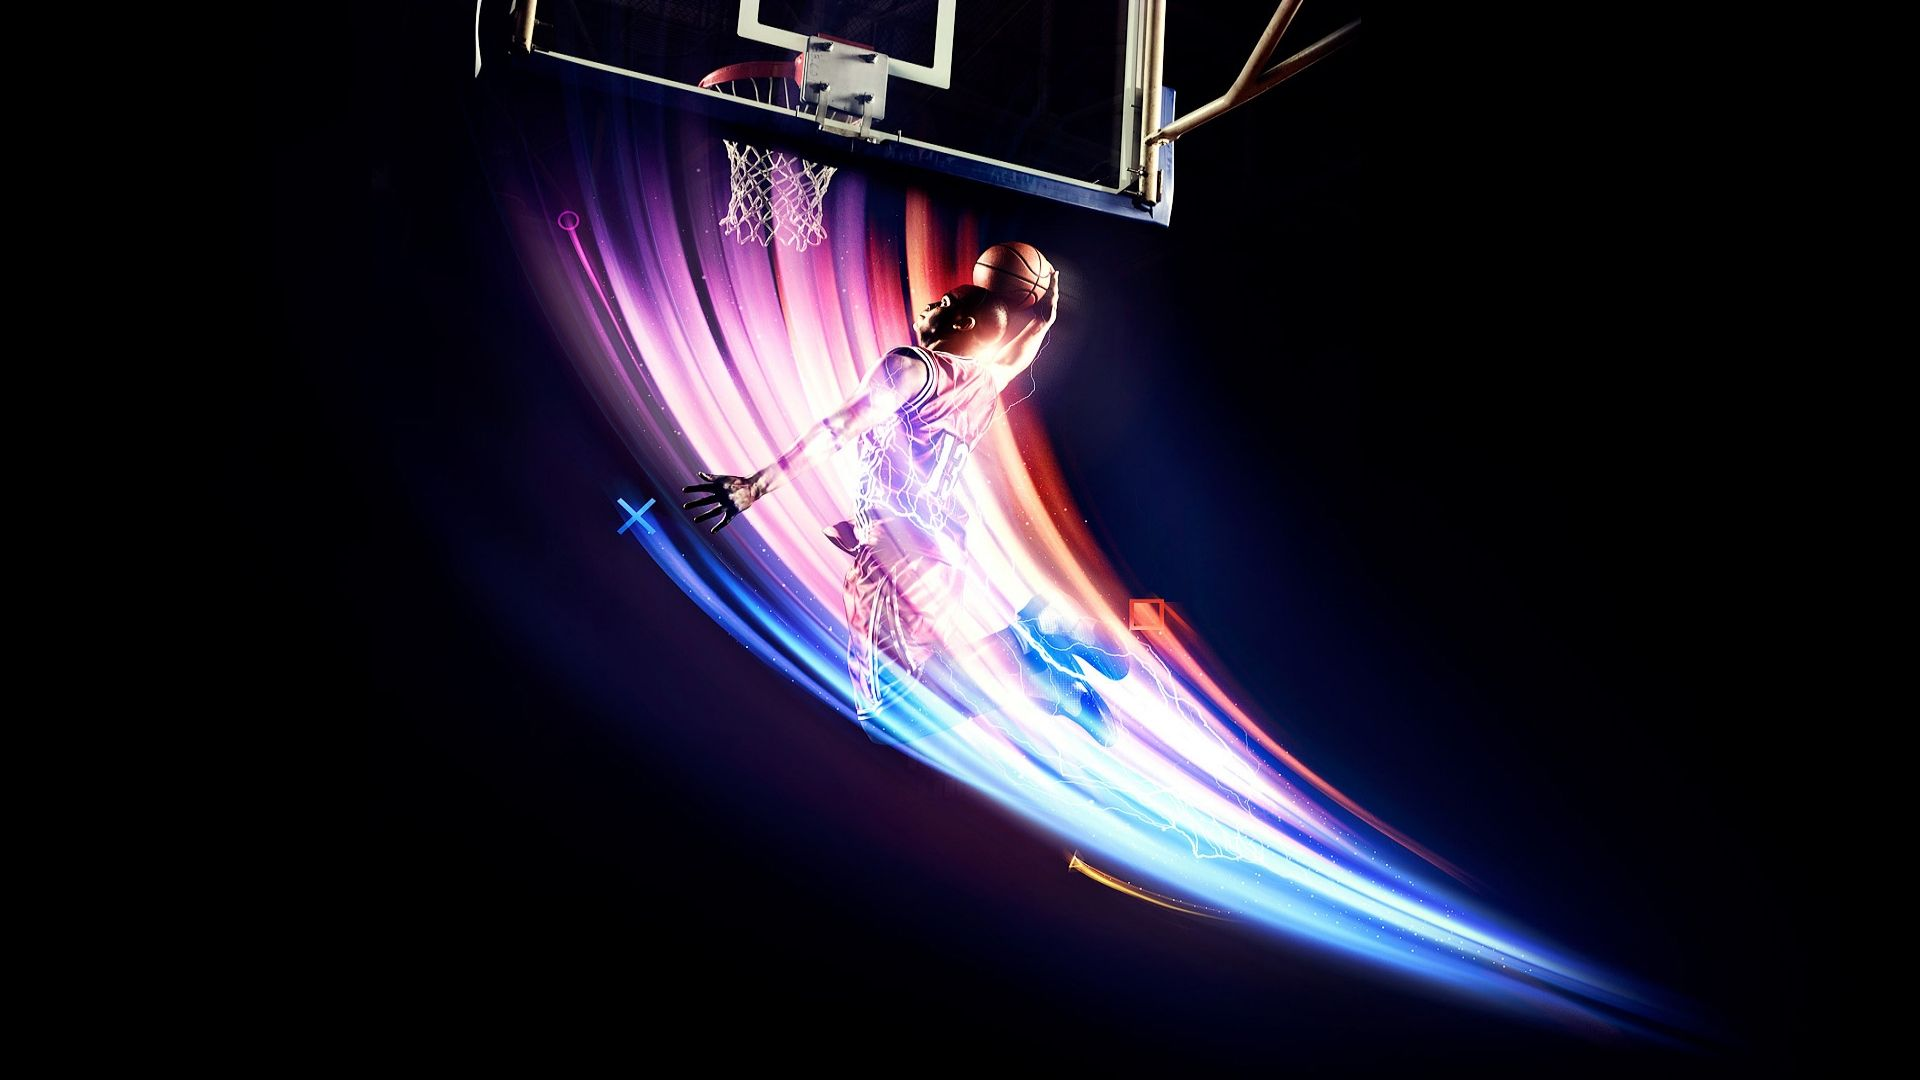 Colorful Cool Basketball Wallpapers Hd 1920x1080